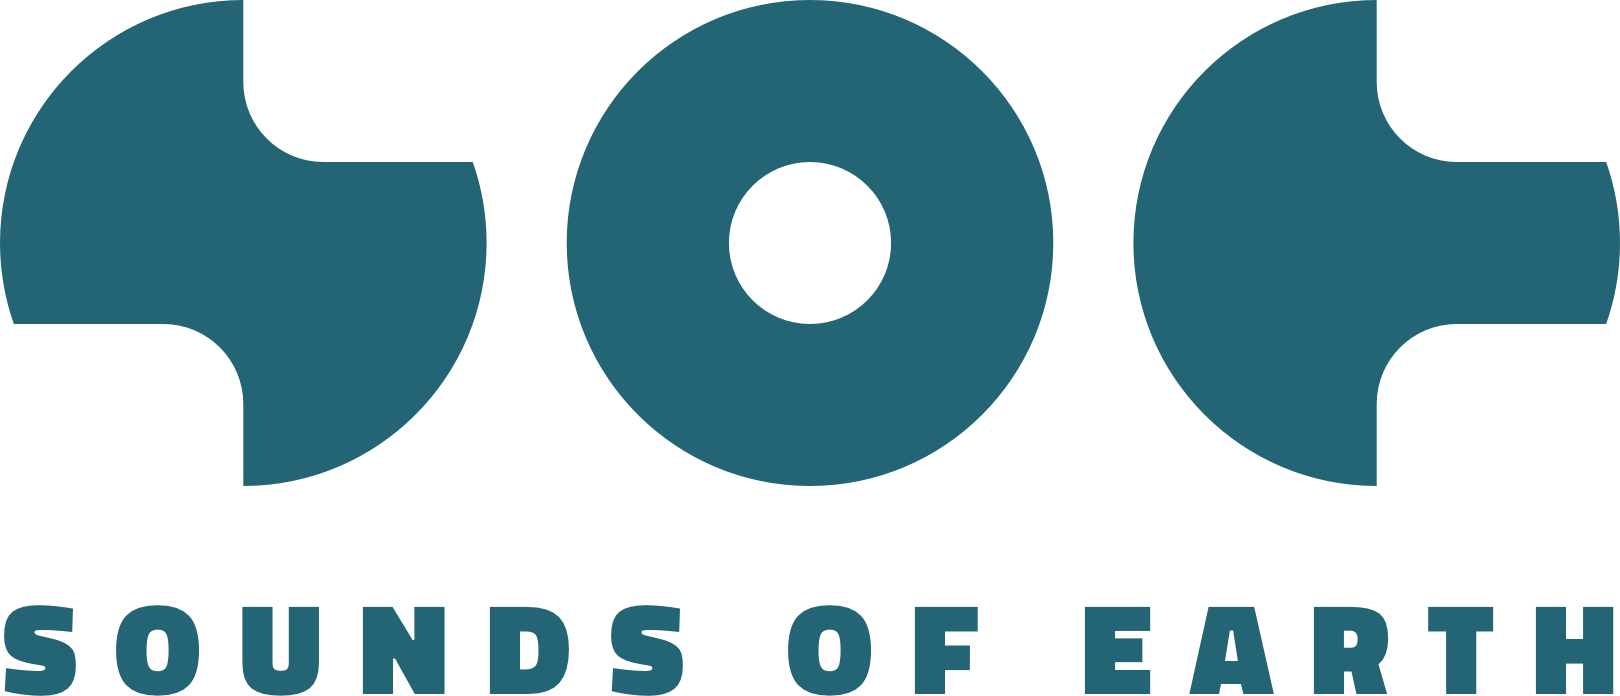 Sounds of Earth Logo